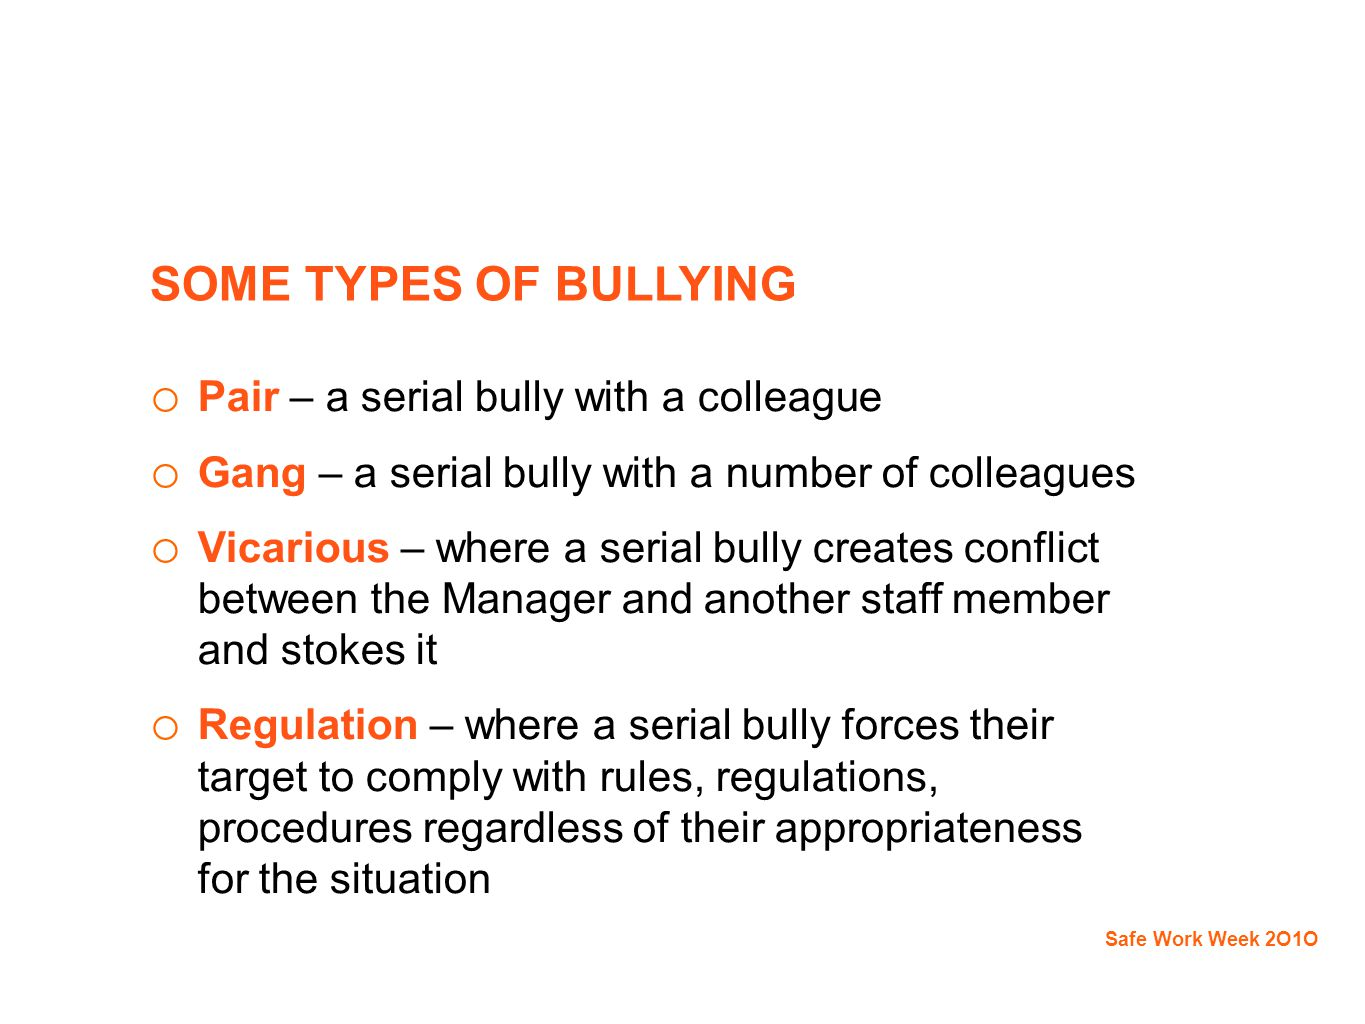 SOME TYPES OF BULLYING o Pair – a serial bully with a colleague o Gang – a serial bully with a number of colleagues o Vicarious – where a serial bully creates conflict between the Manager and another staff member and stokes it o Regulation – where a serial bully forces their target to comply with rules, regulations, procedures regardless of their appropriateness for the situation Safe Work Week 2O1O